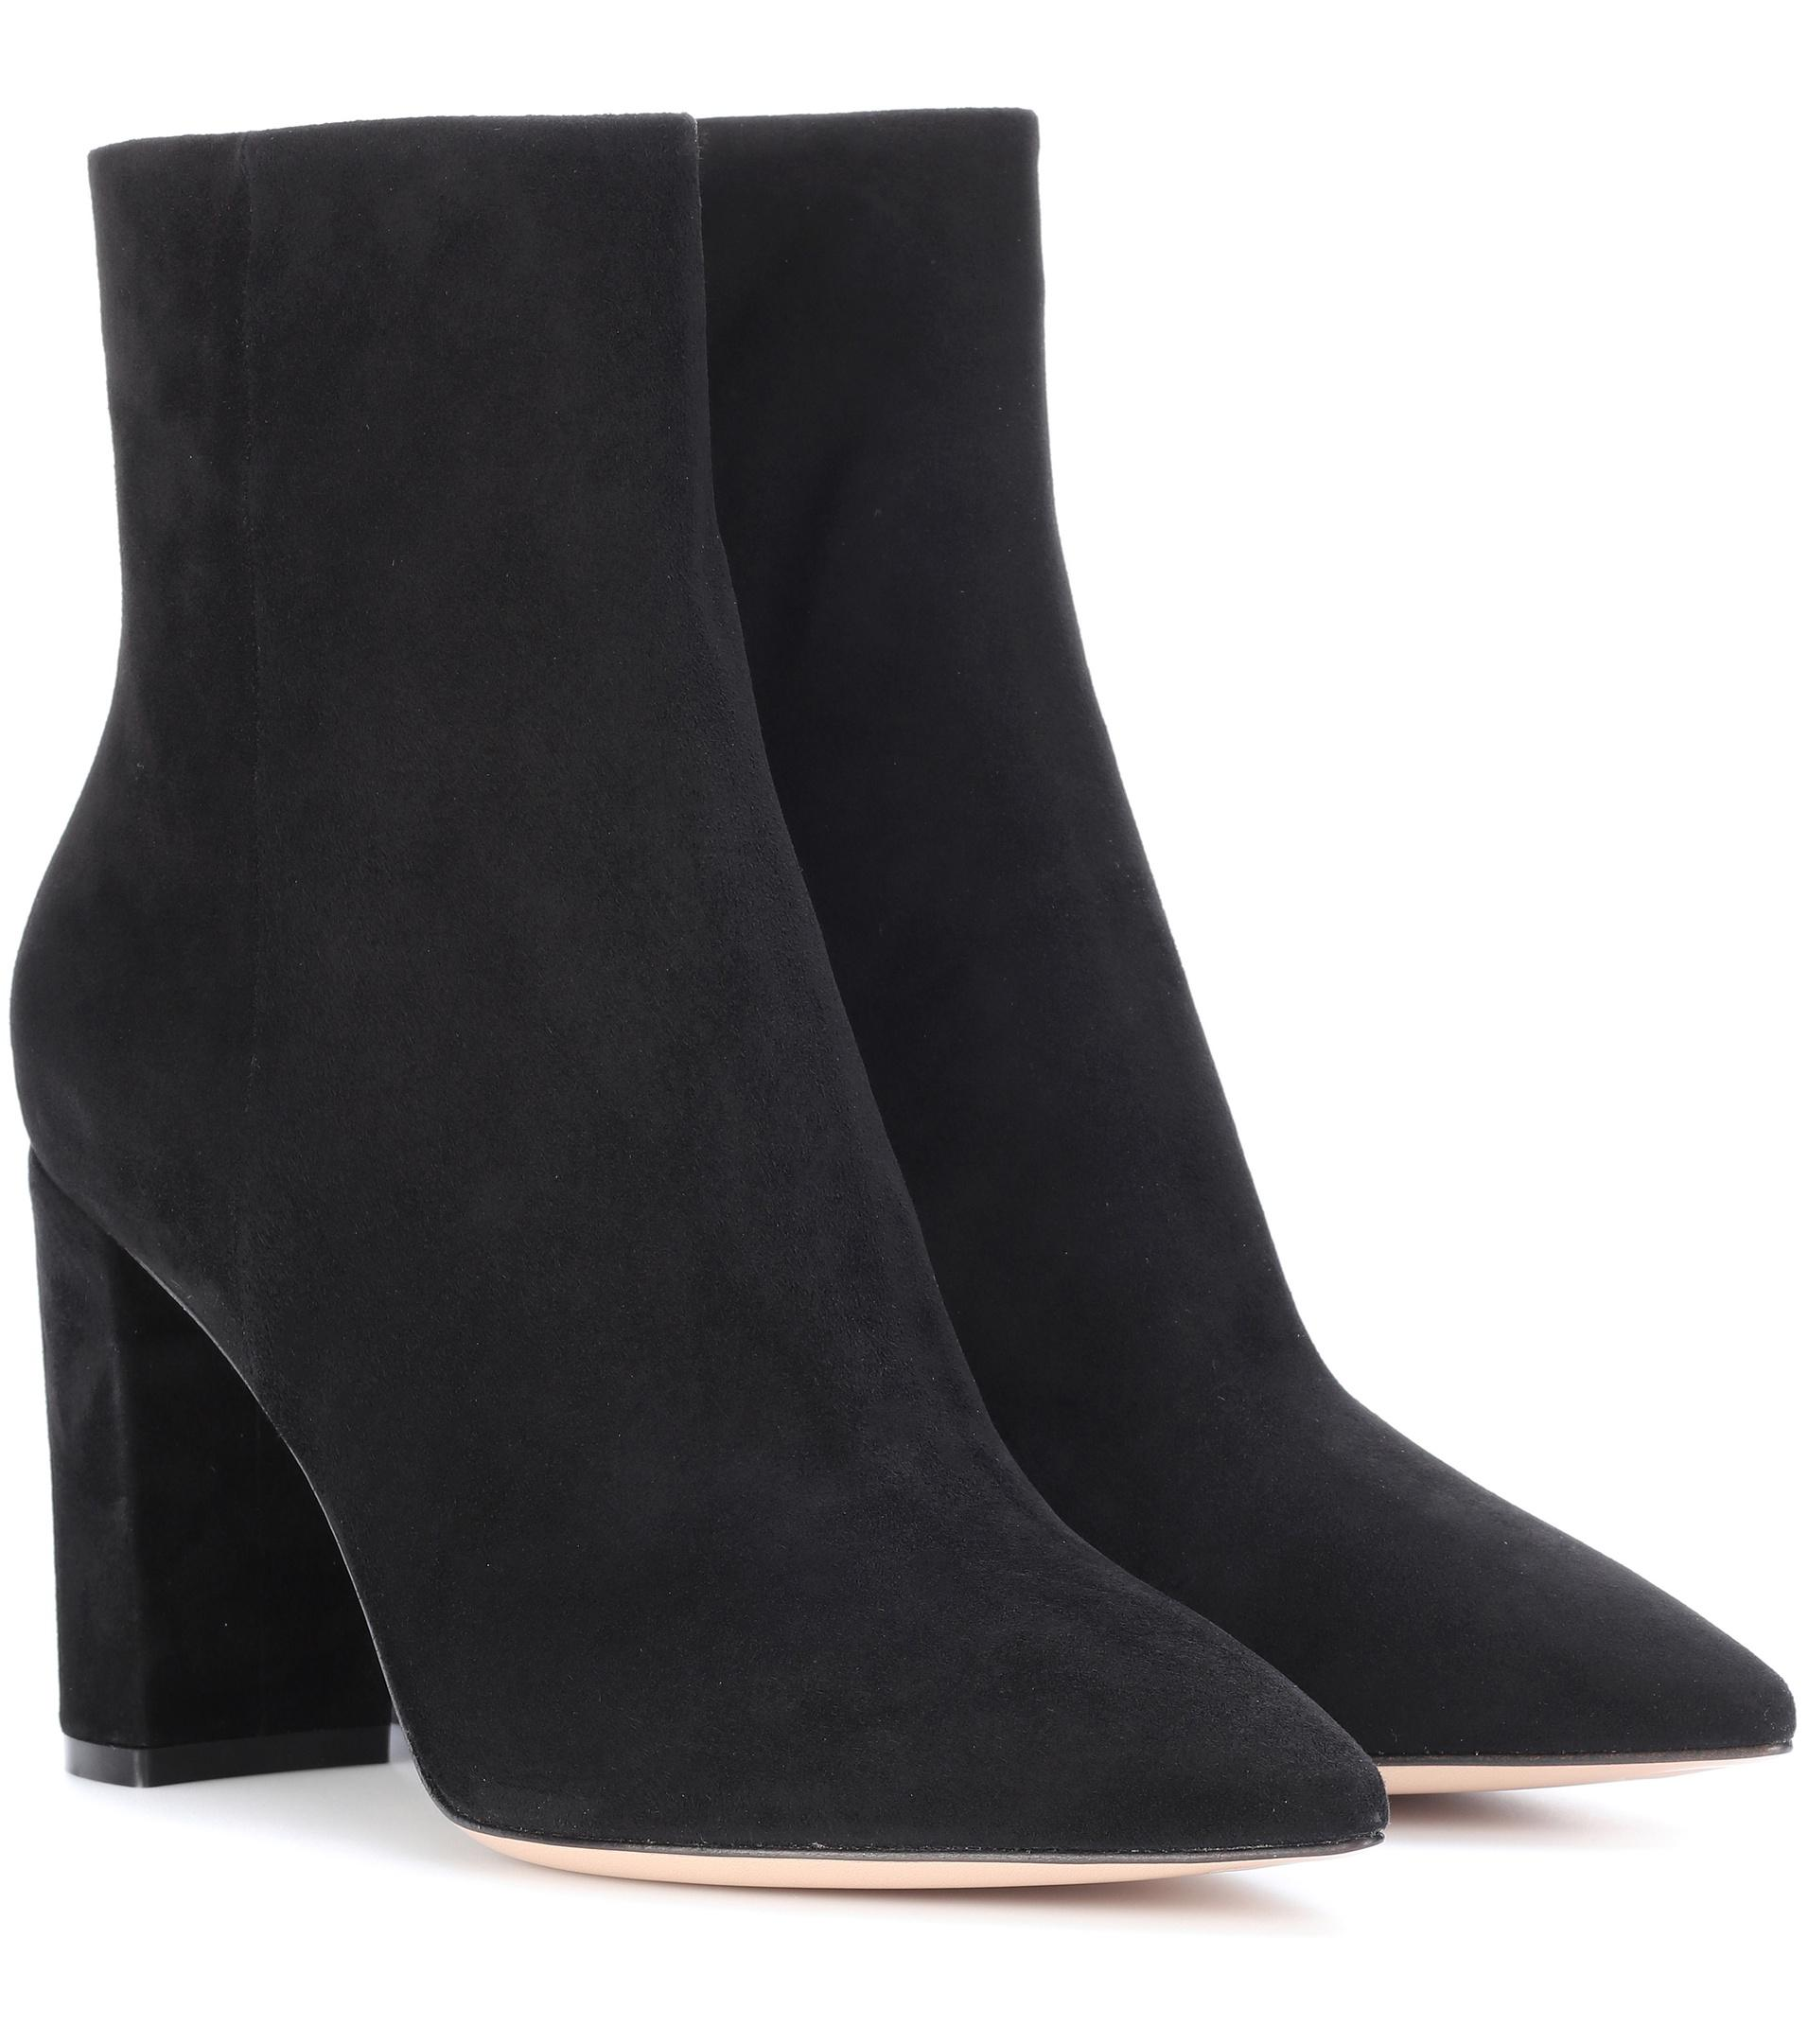 Gianvito Rossi Elasticized leather ankle boots